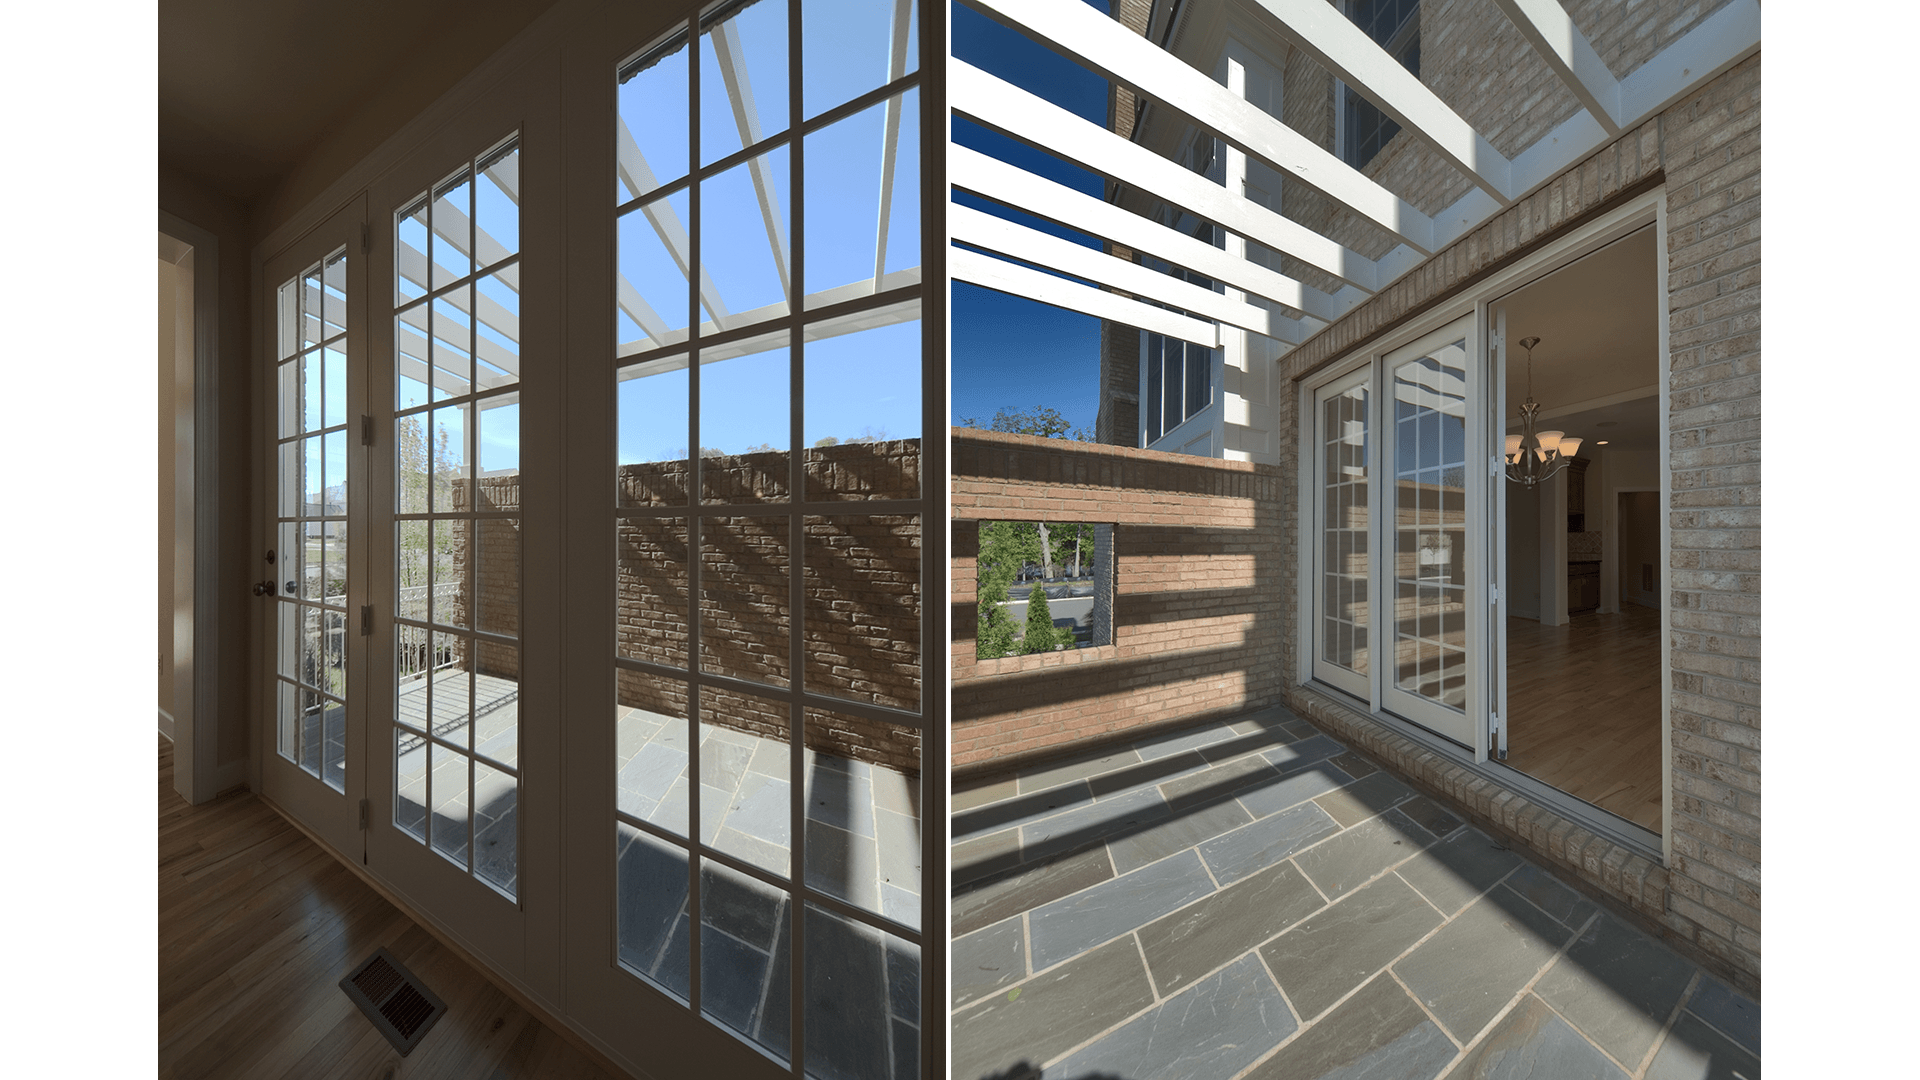 The Courtyard of the Brentwood model in Brambleton. Some options shown.